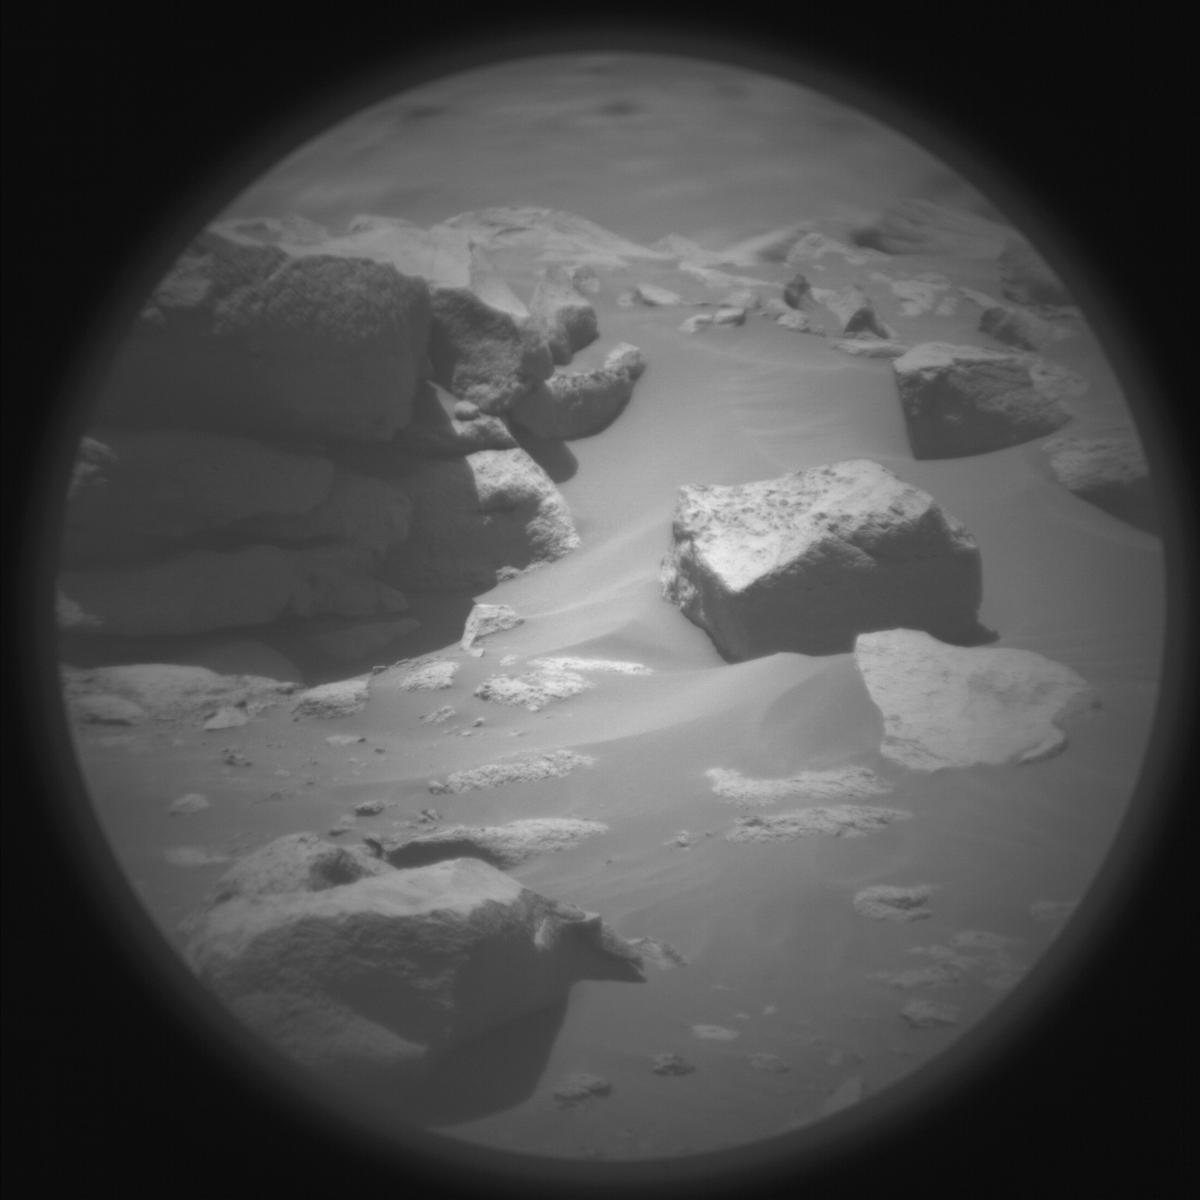 This image was taken by SUPERCAM_RMI onboard NASA's Mars rover Perseverance on Sol 149